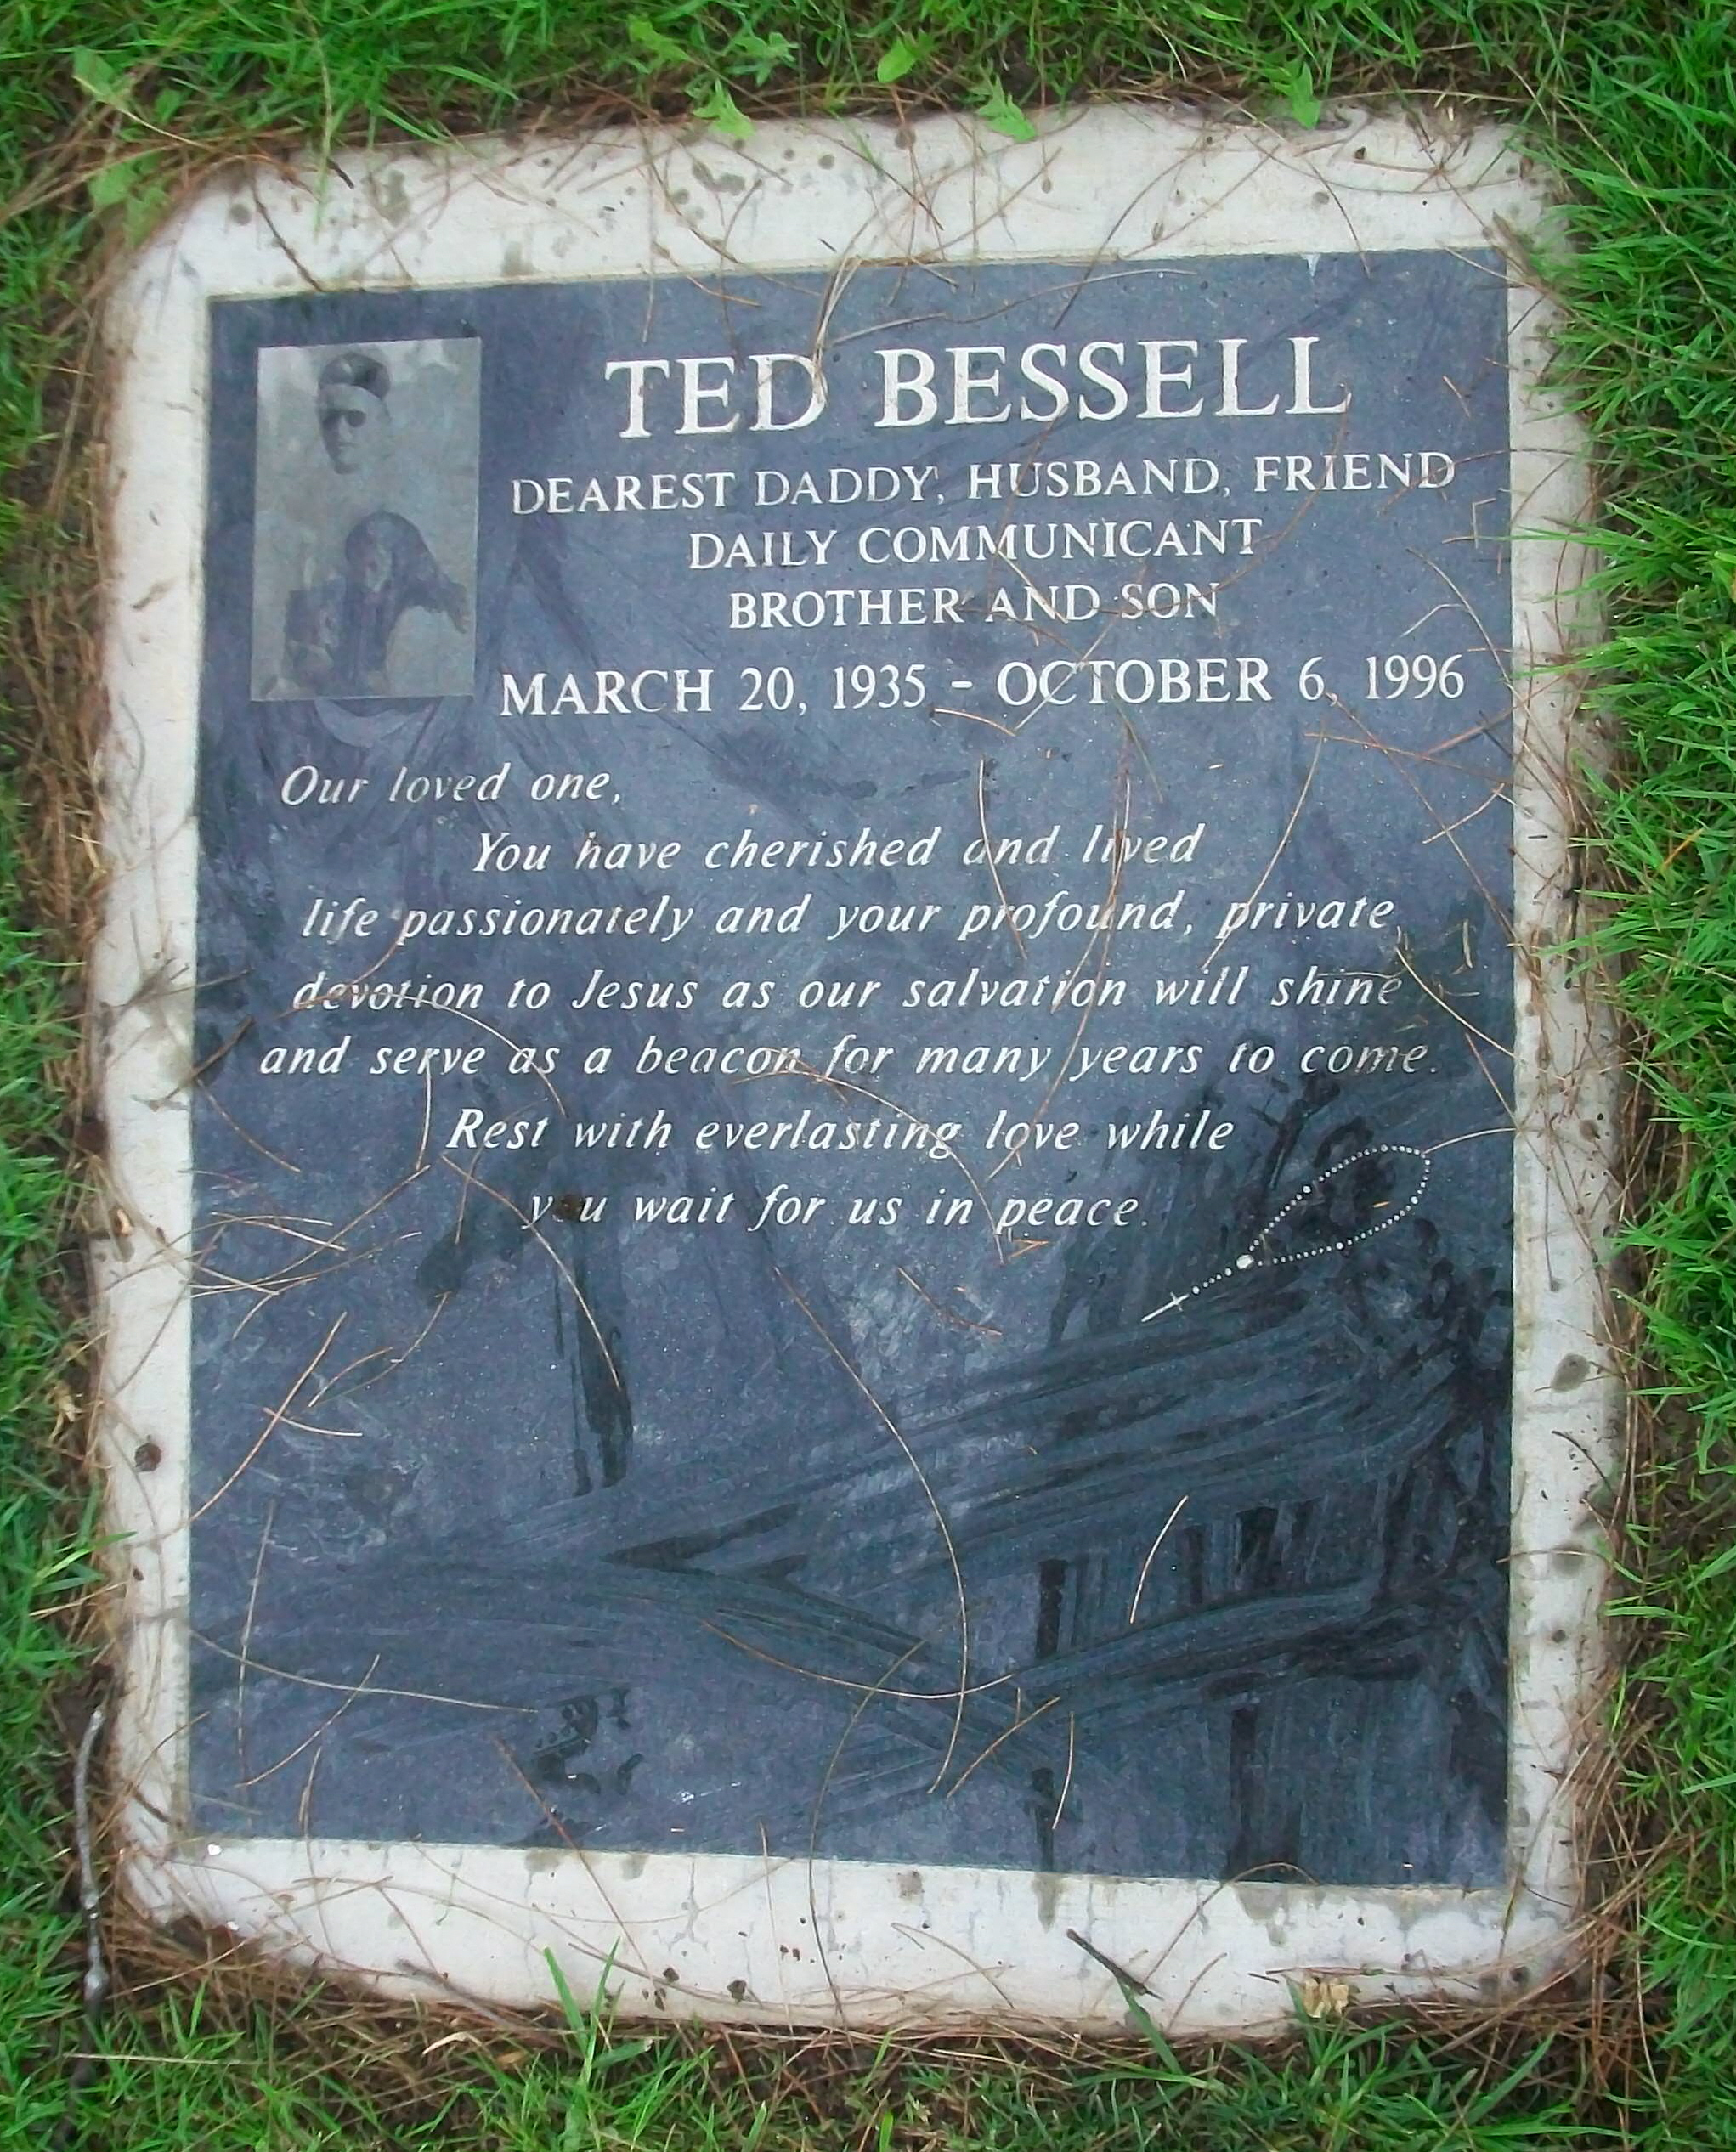 ted bessell net worth